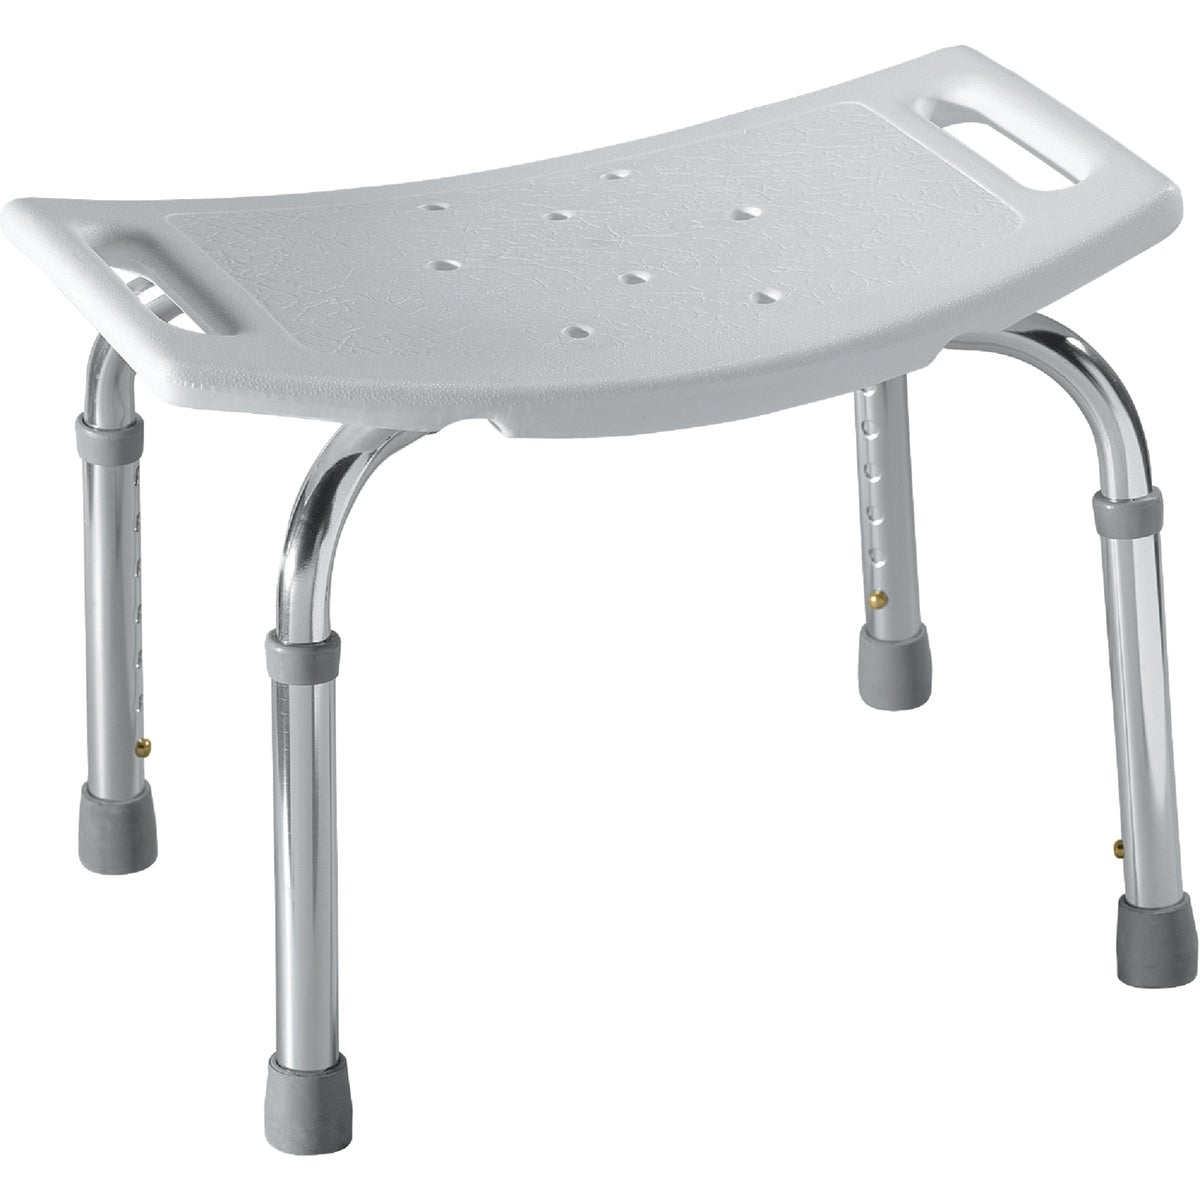 ADJUSTABLE SHOWER SEAT - DN7025 by C S I Donner